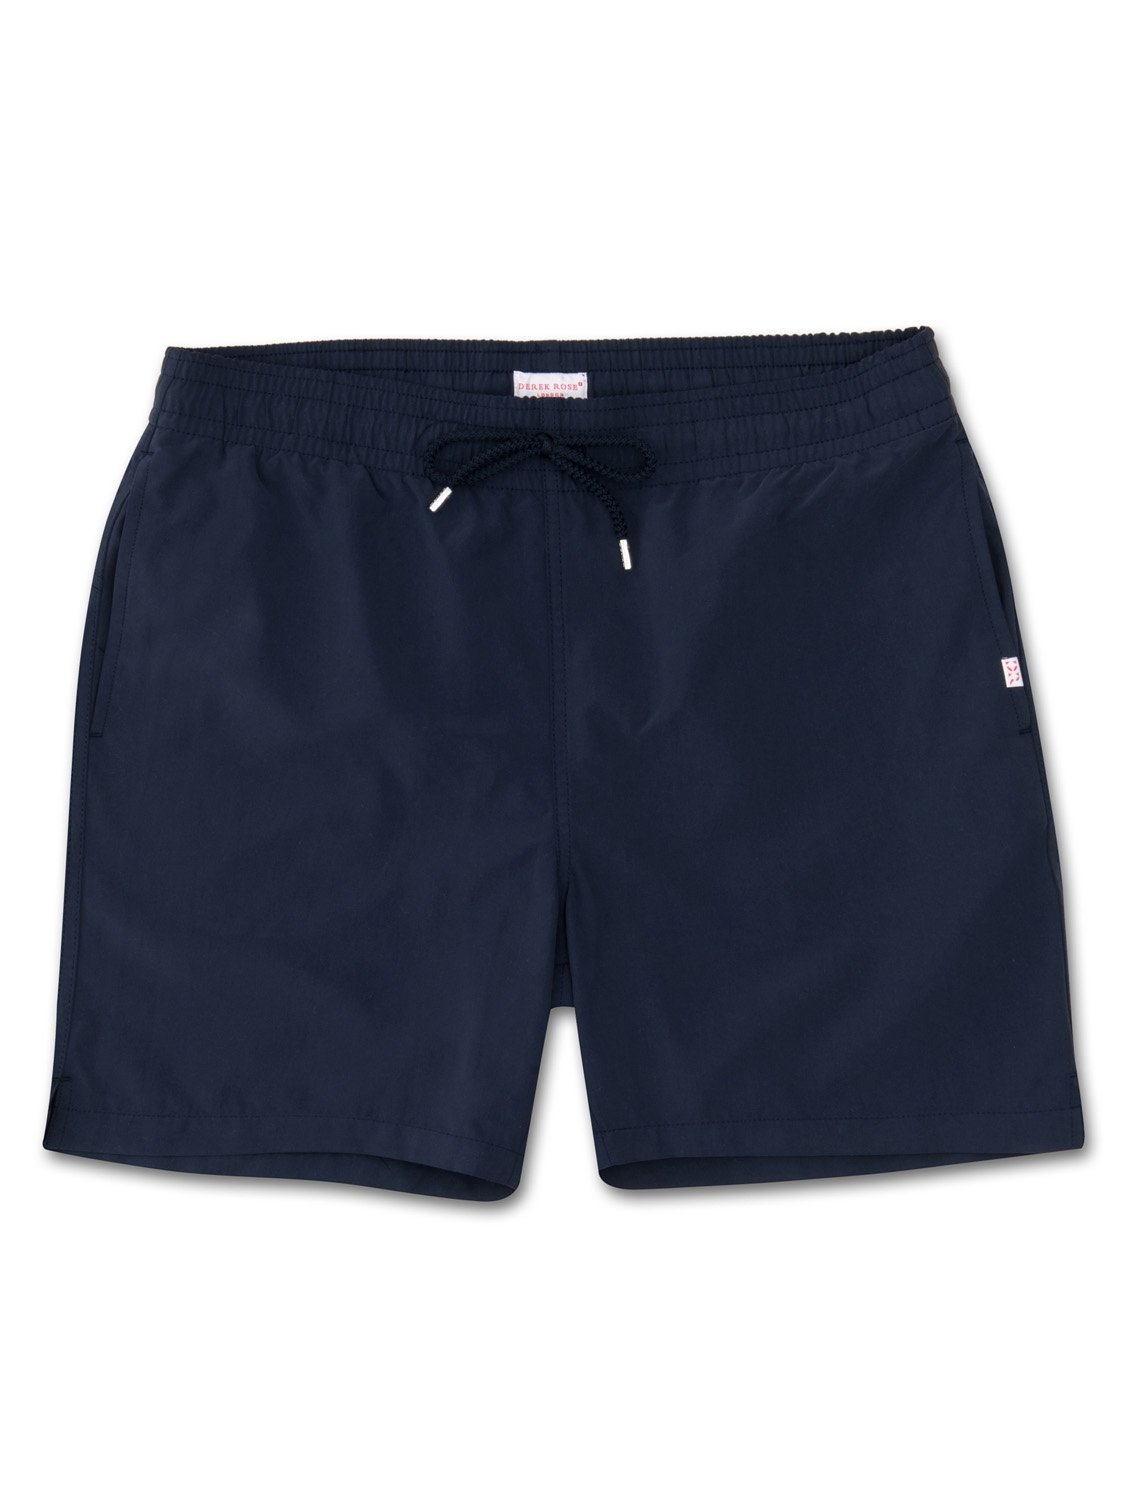 Men's Classic Fit Swim Shorts Aruba Navy